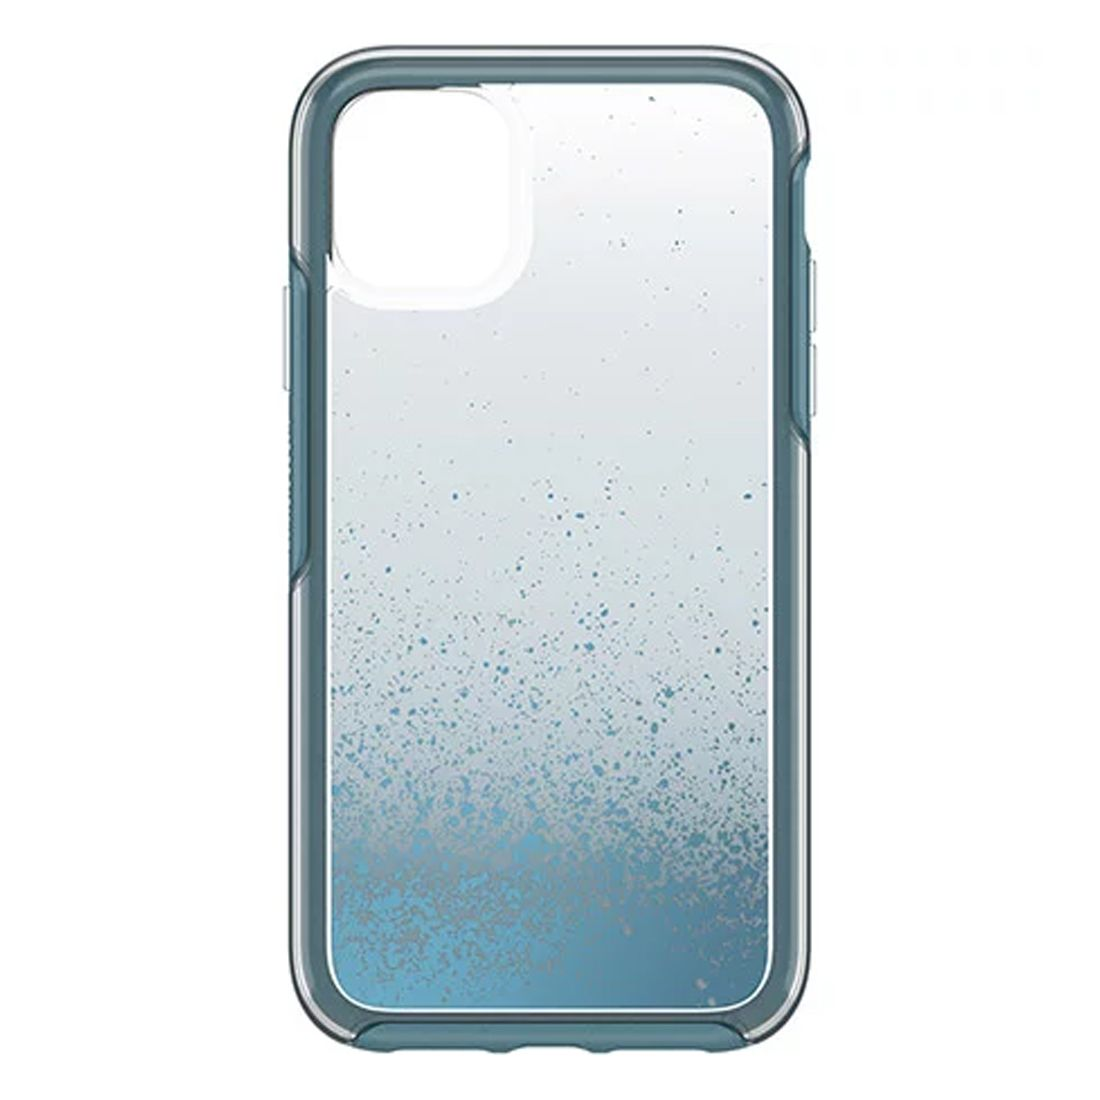 Otterbox Symmetry IML Case for Apple iPhone 11 Pro - We'll Call Blue